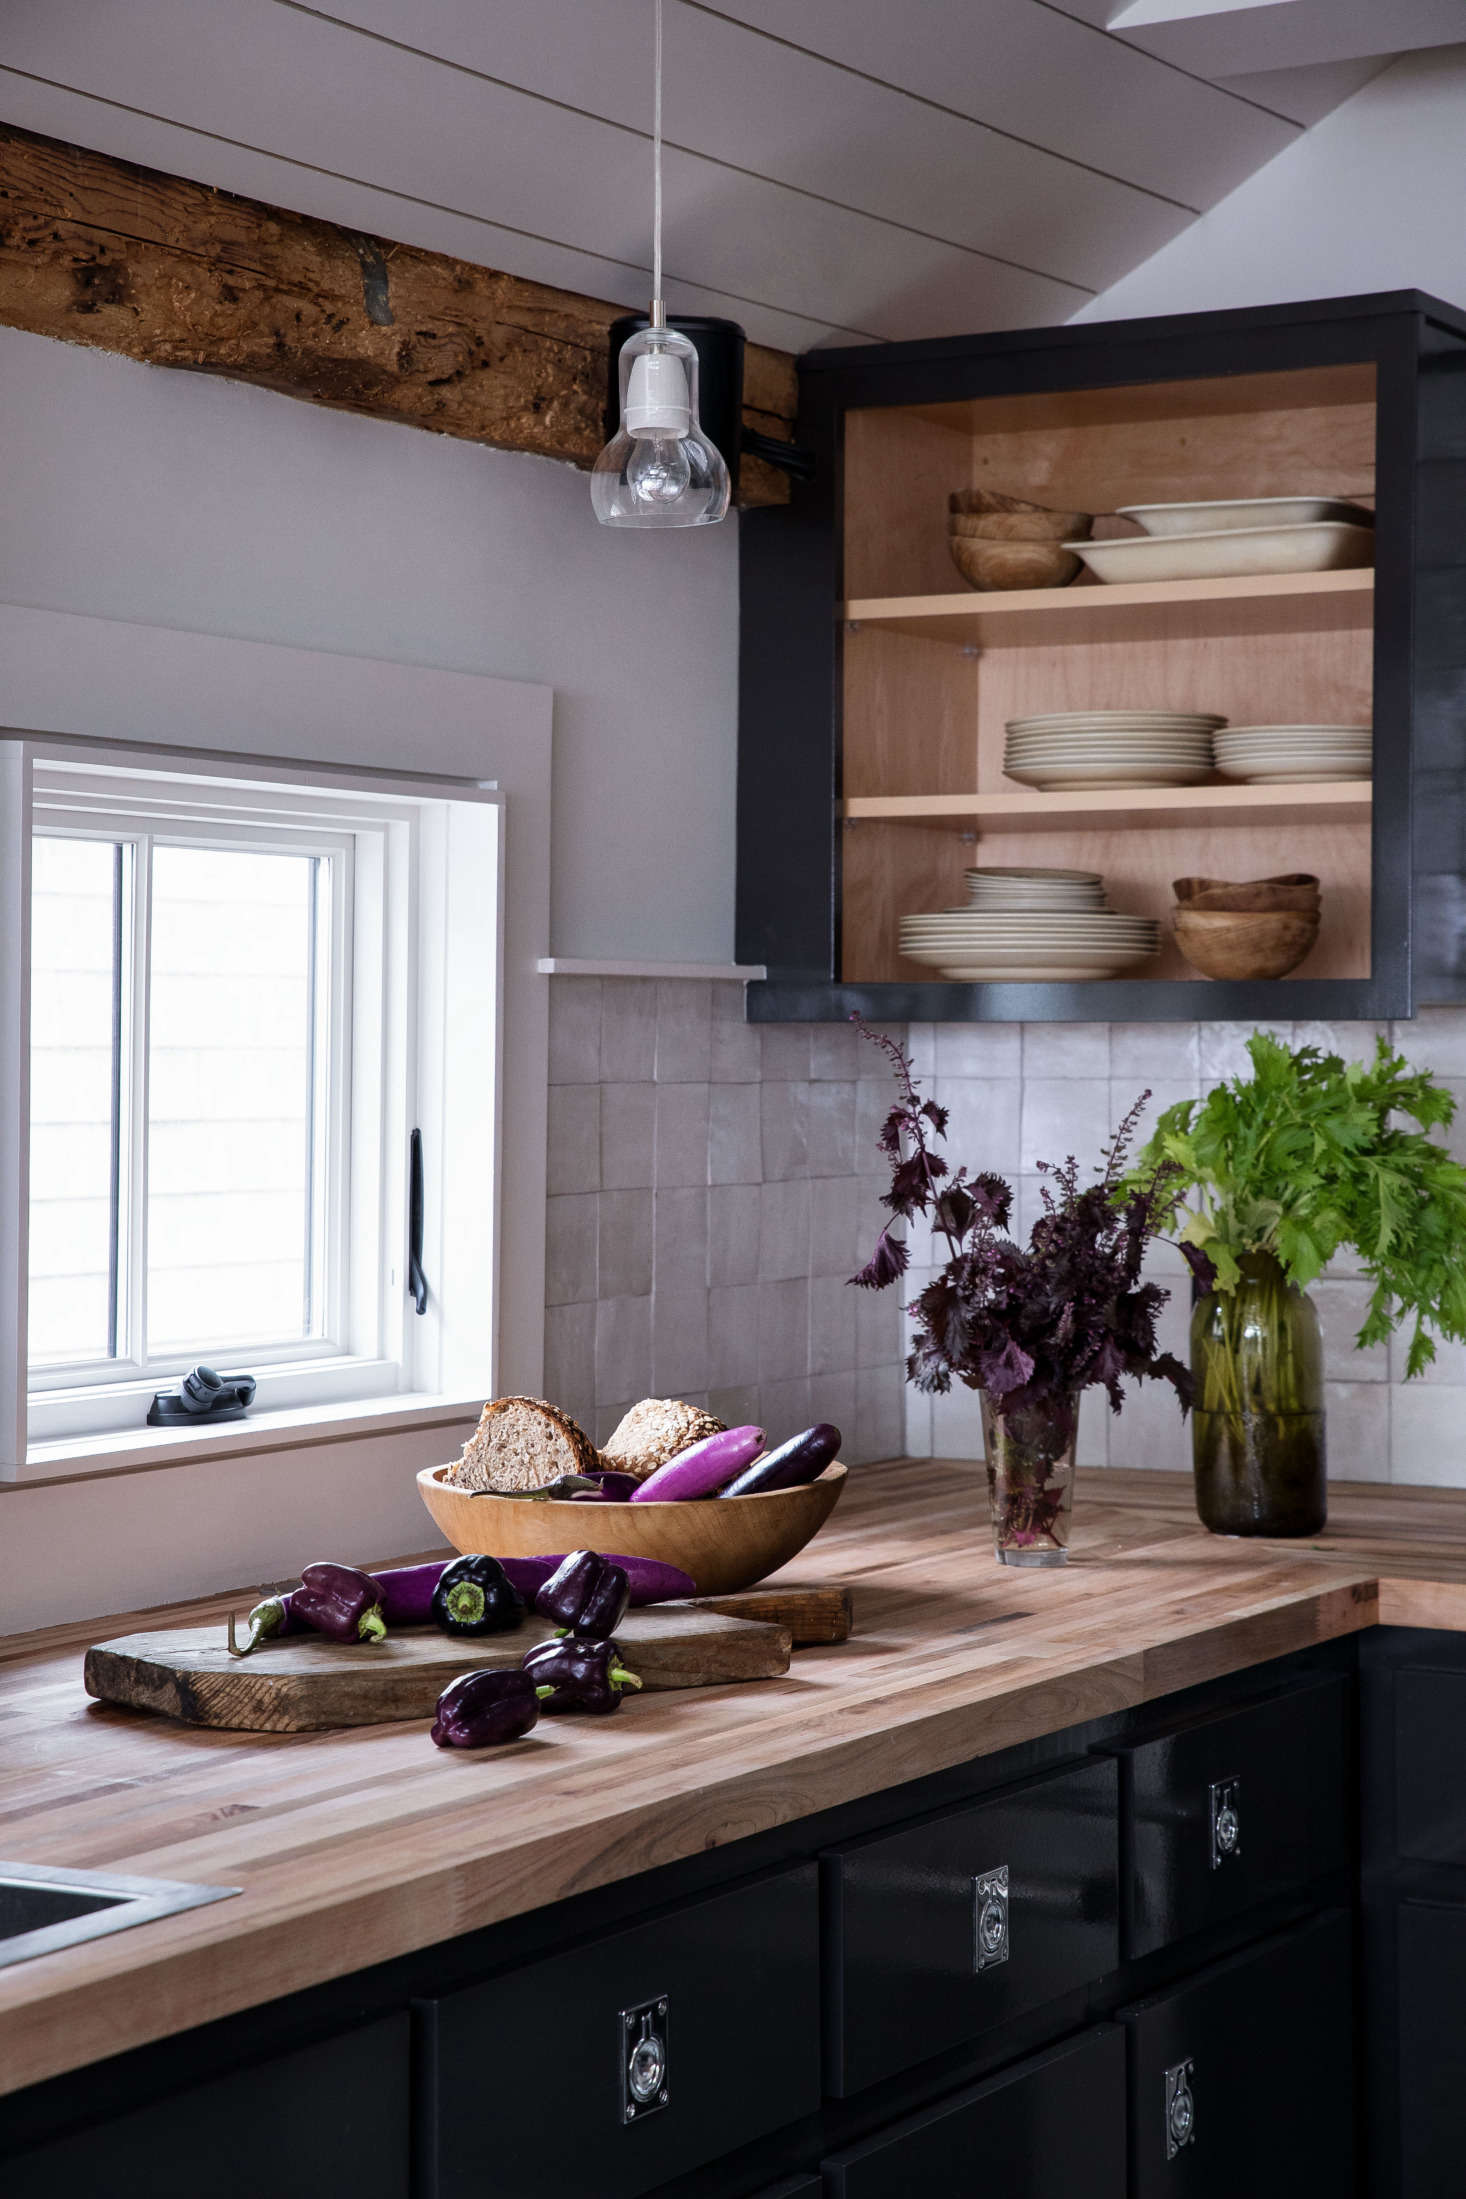 To enhance the nautical feel, Hein+Cozzi used recessed boat pulls as kitchen hardware.